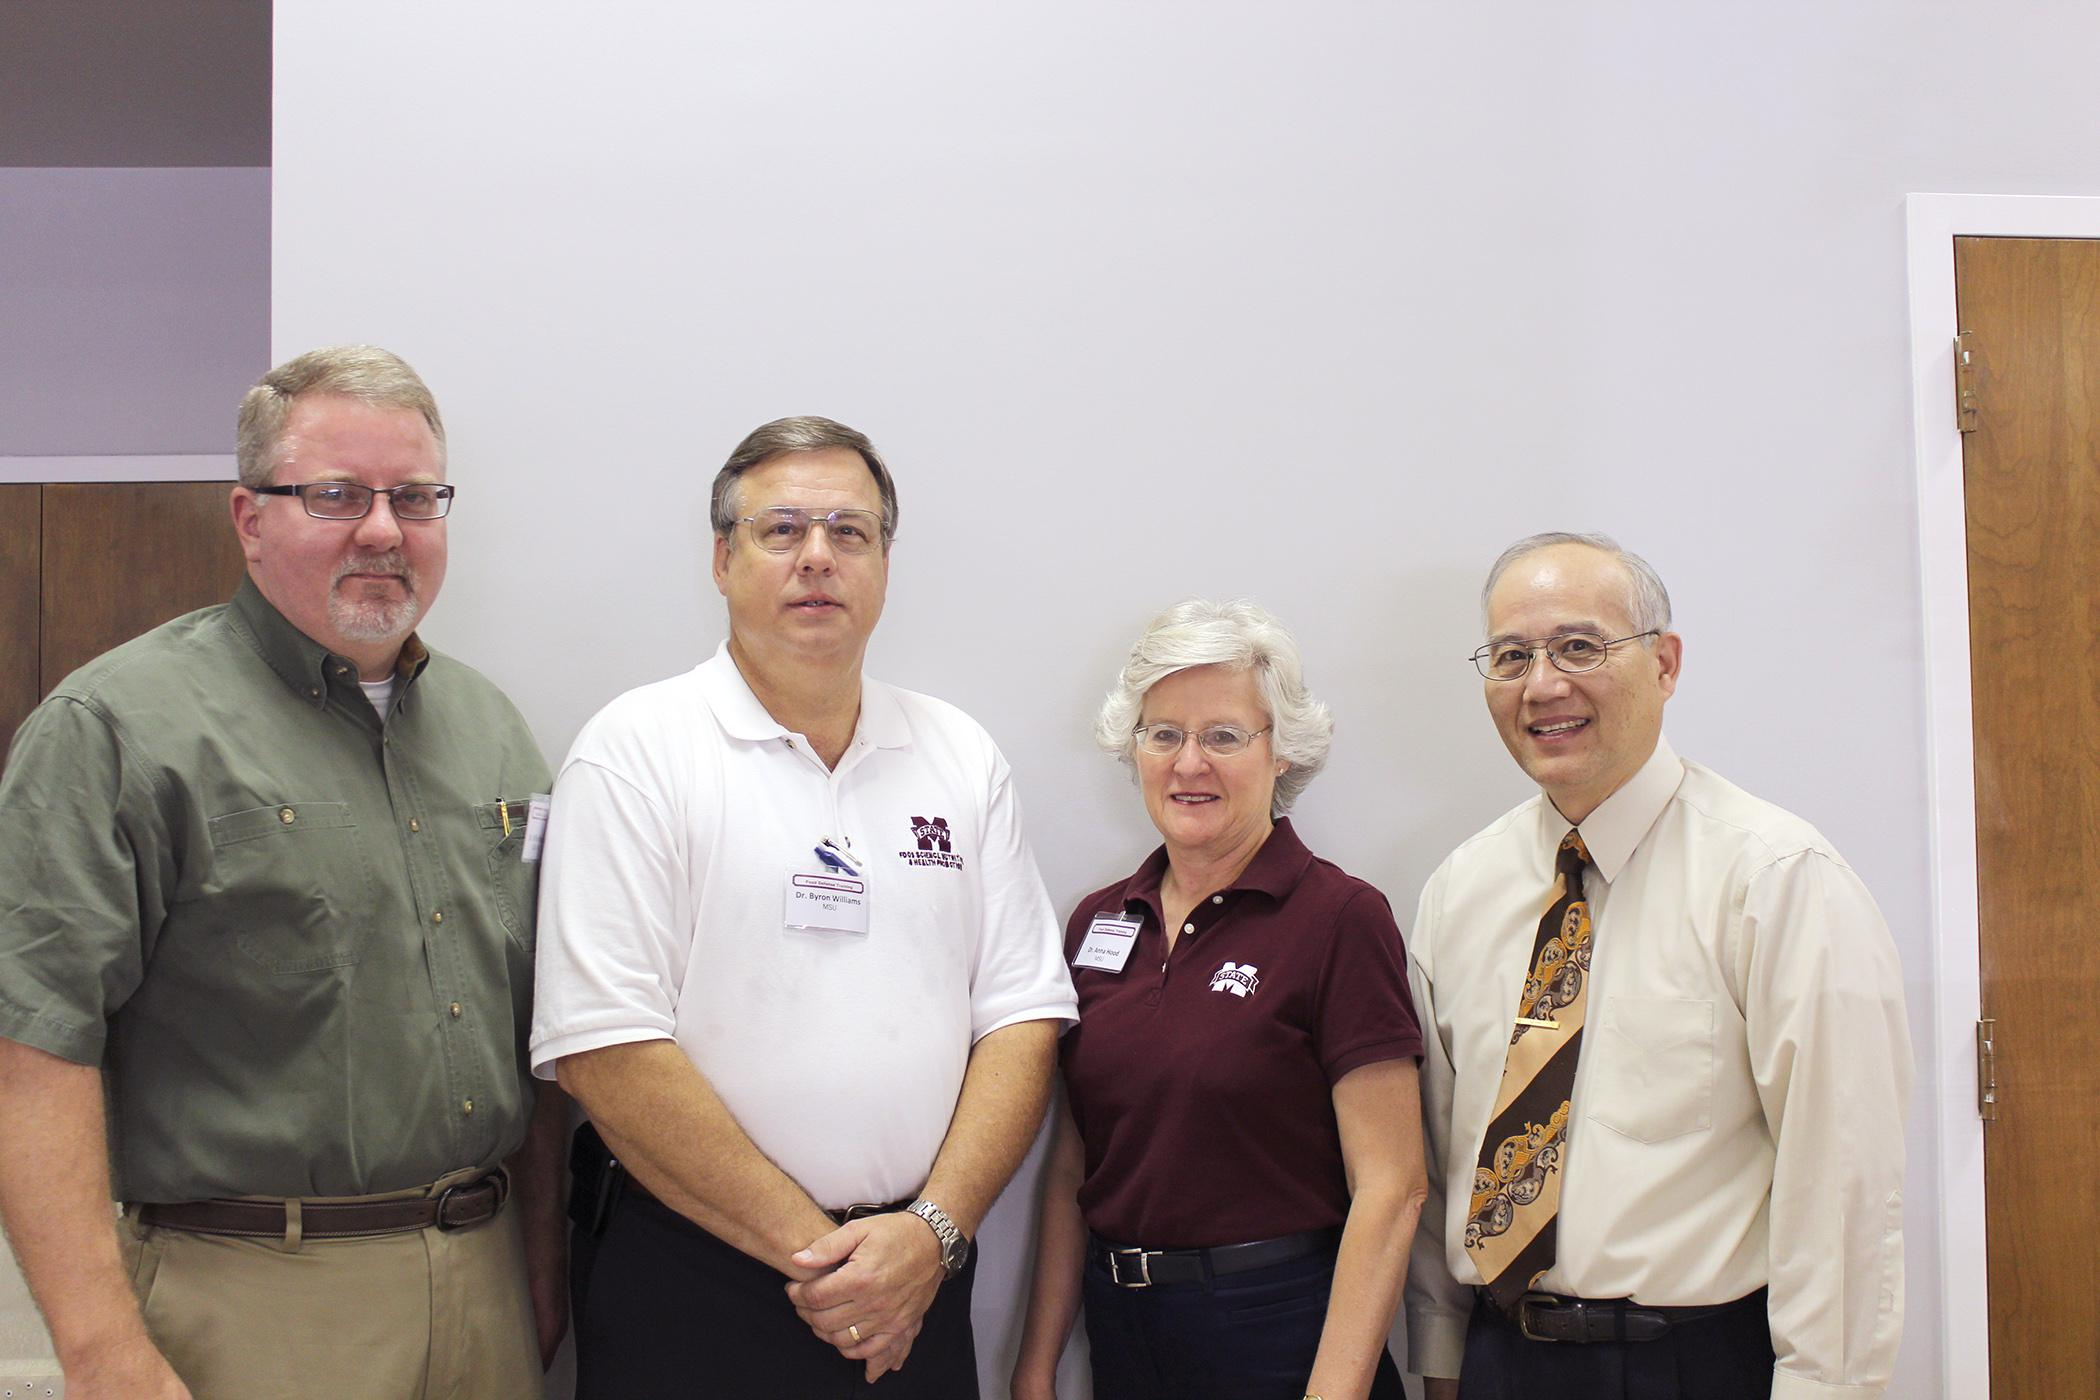 The Mississippi State University Extension Service hosted a workshop sponsored by the U.S. Department of Agriculture's Food Safety Inspection Service to help meat processors develop a food defense plan. Presenters included, from left, Dr. William Pepper, USDA-FSIS; Byron Williams and Anna Hood, MSU Extension Service; and Sam Chang, MSU Department of Food Science, Nutrition and Health Promotion. (MSU Ag Communications/Keri Collins Lewis)